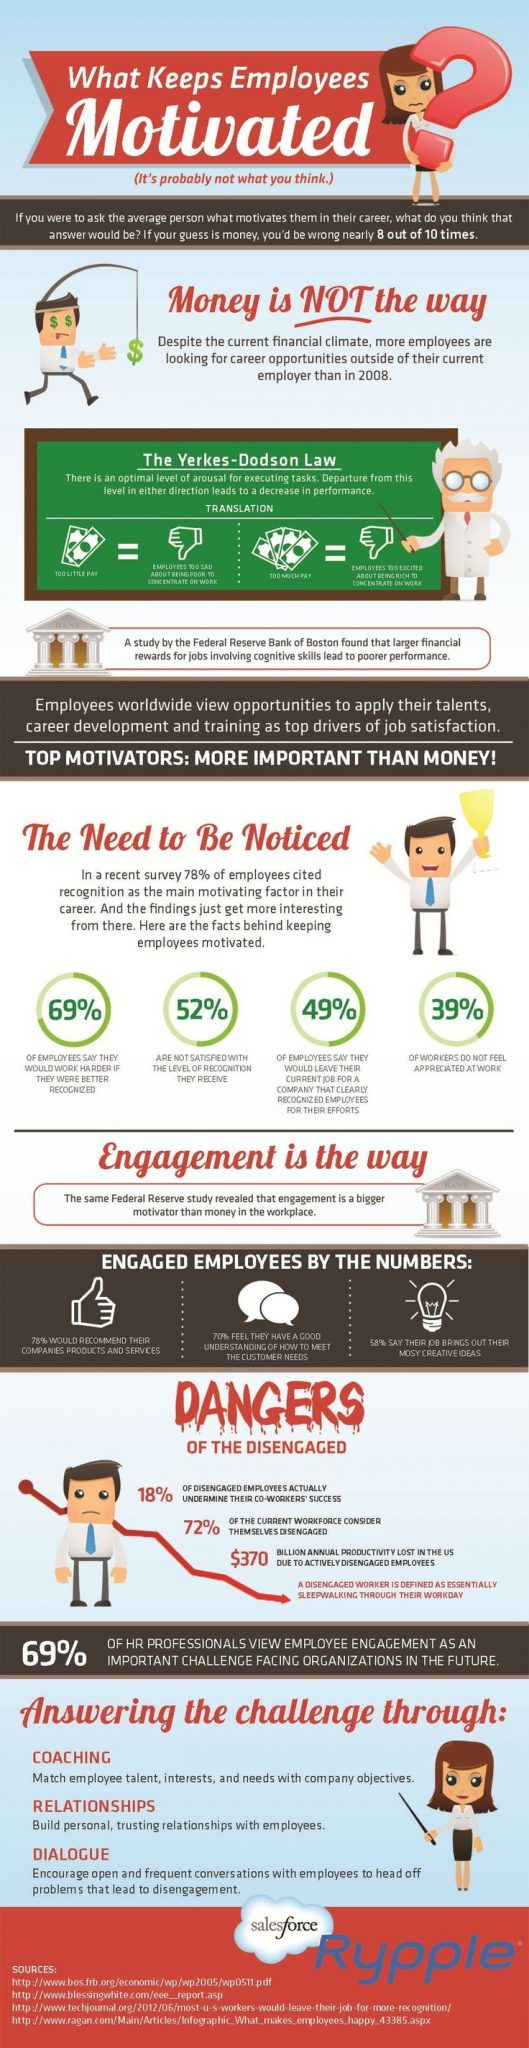 Importance of coaching What keeps Employees Motivated infographic